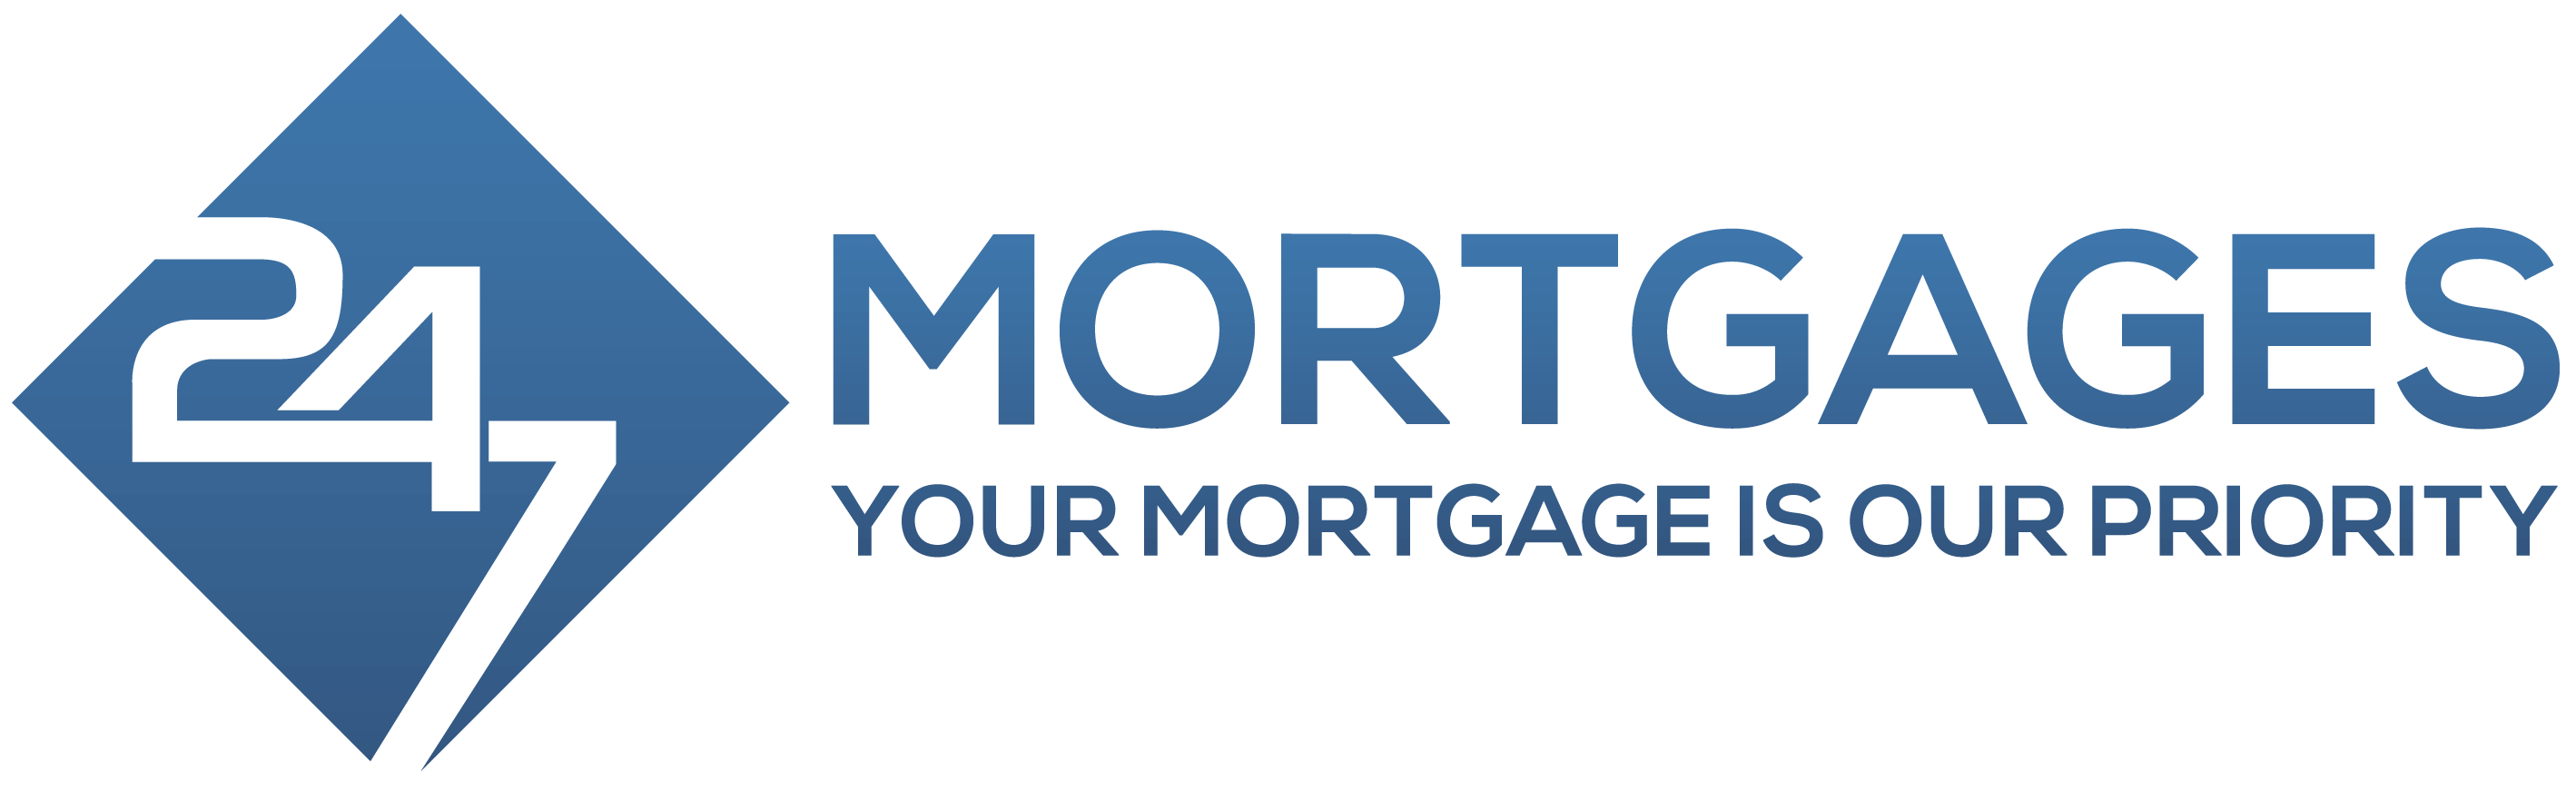 Mortgage Brokers South Yorkshire